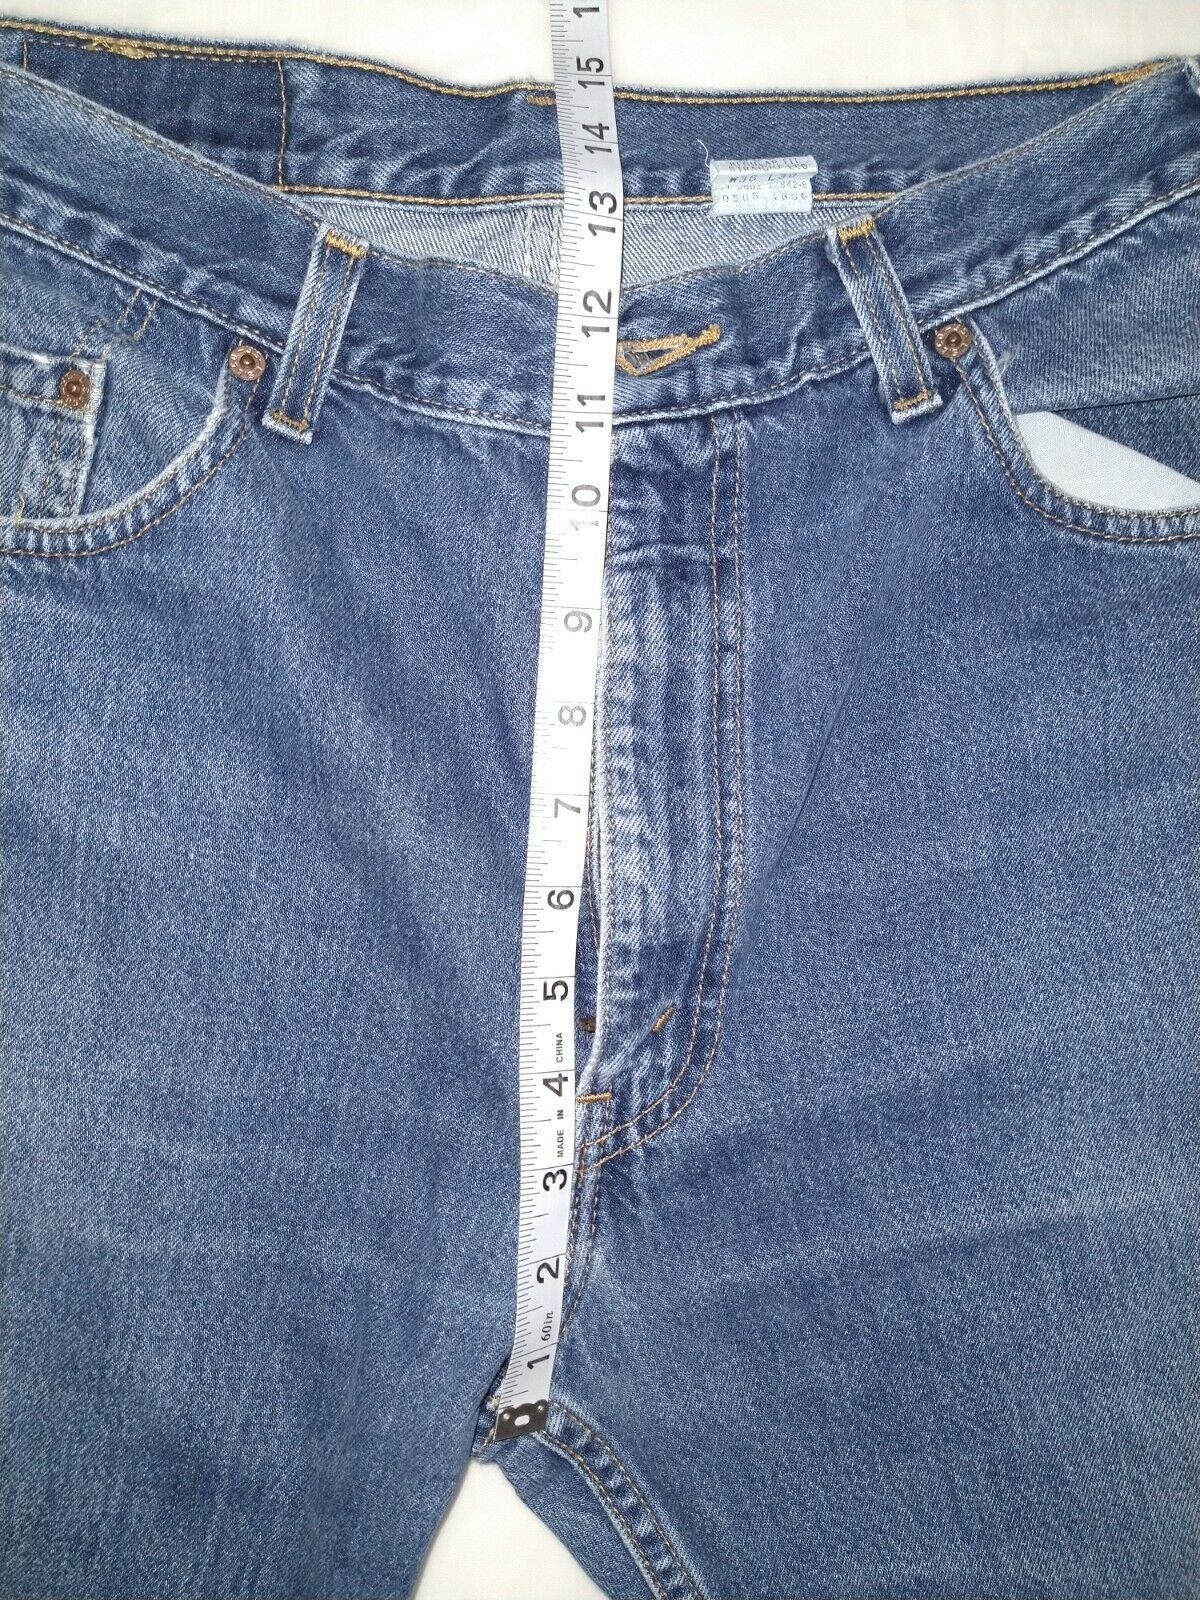 Levi's 505 Jean's Made in the USA Men's size 36x3… - image 5